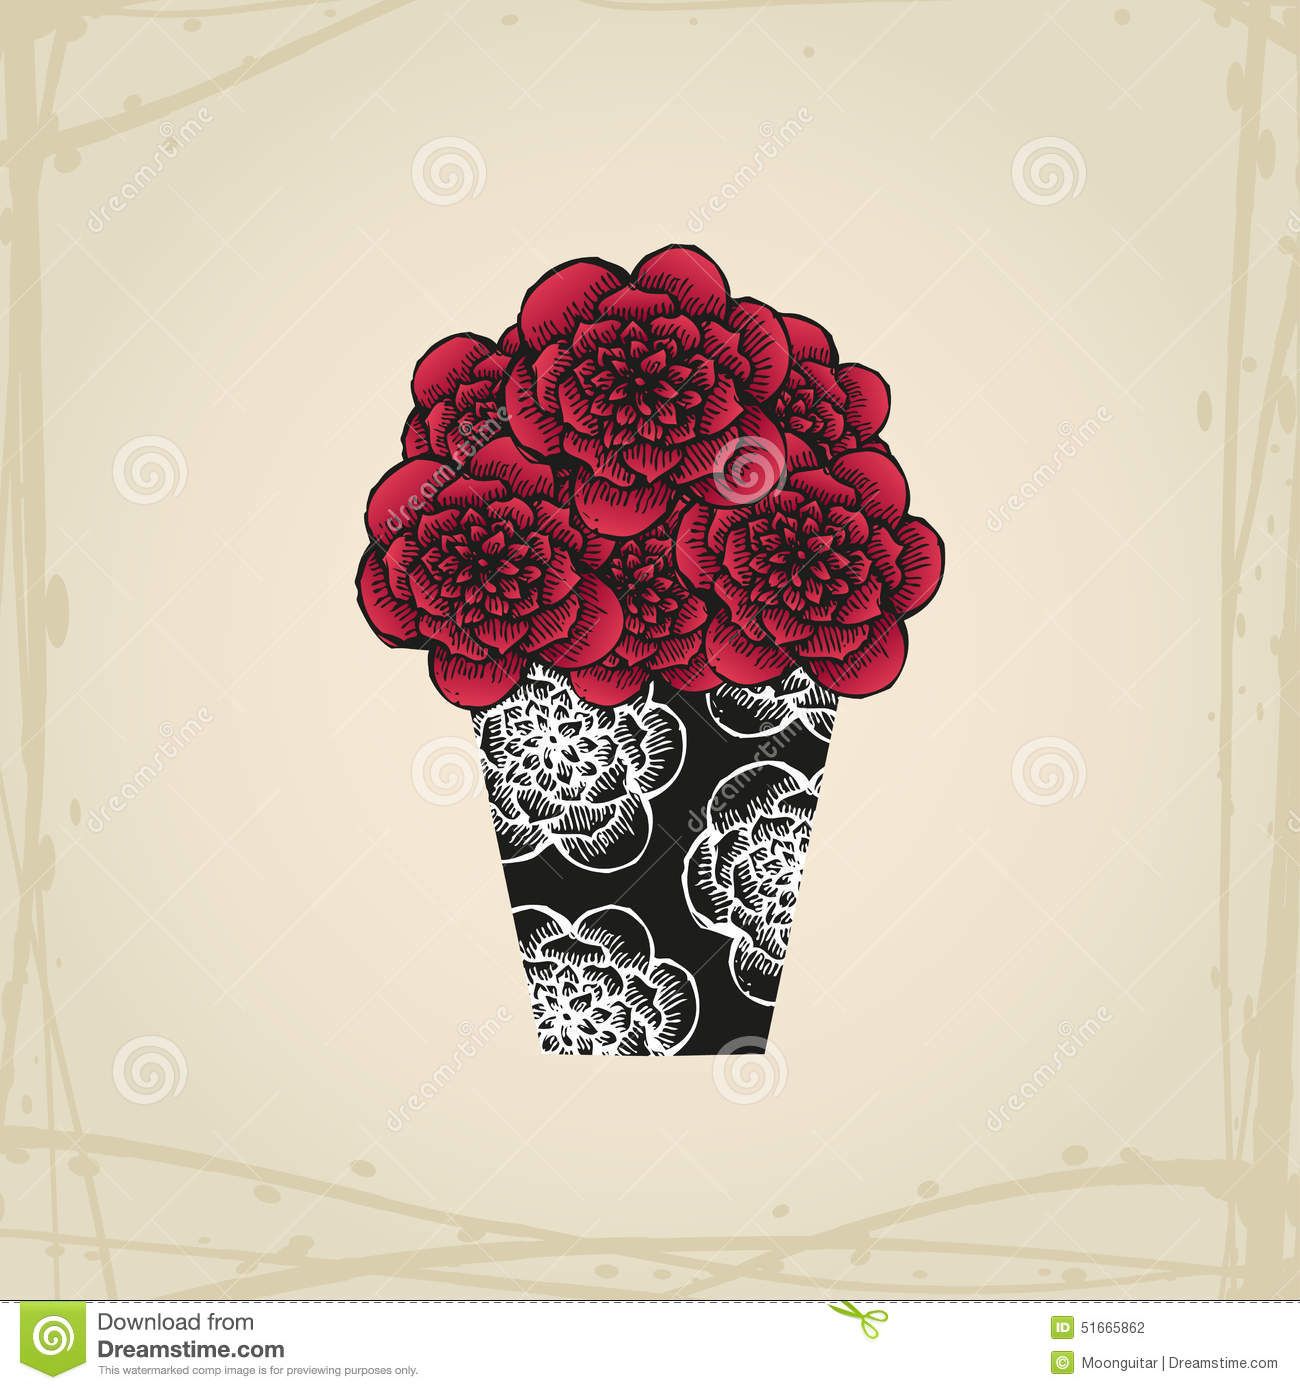 Hand Drawn Doodle Roses In Tattoo Style And Black Stock Vector ...